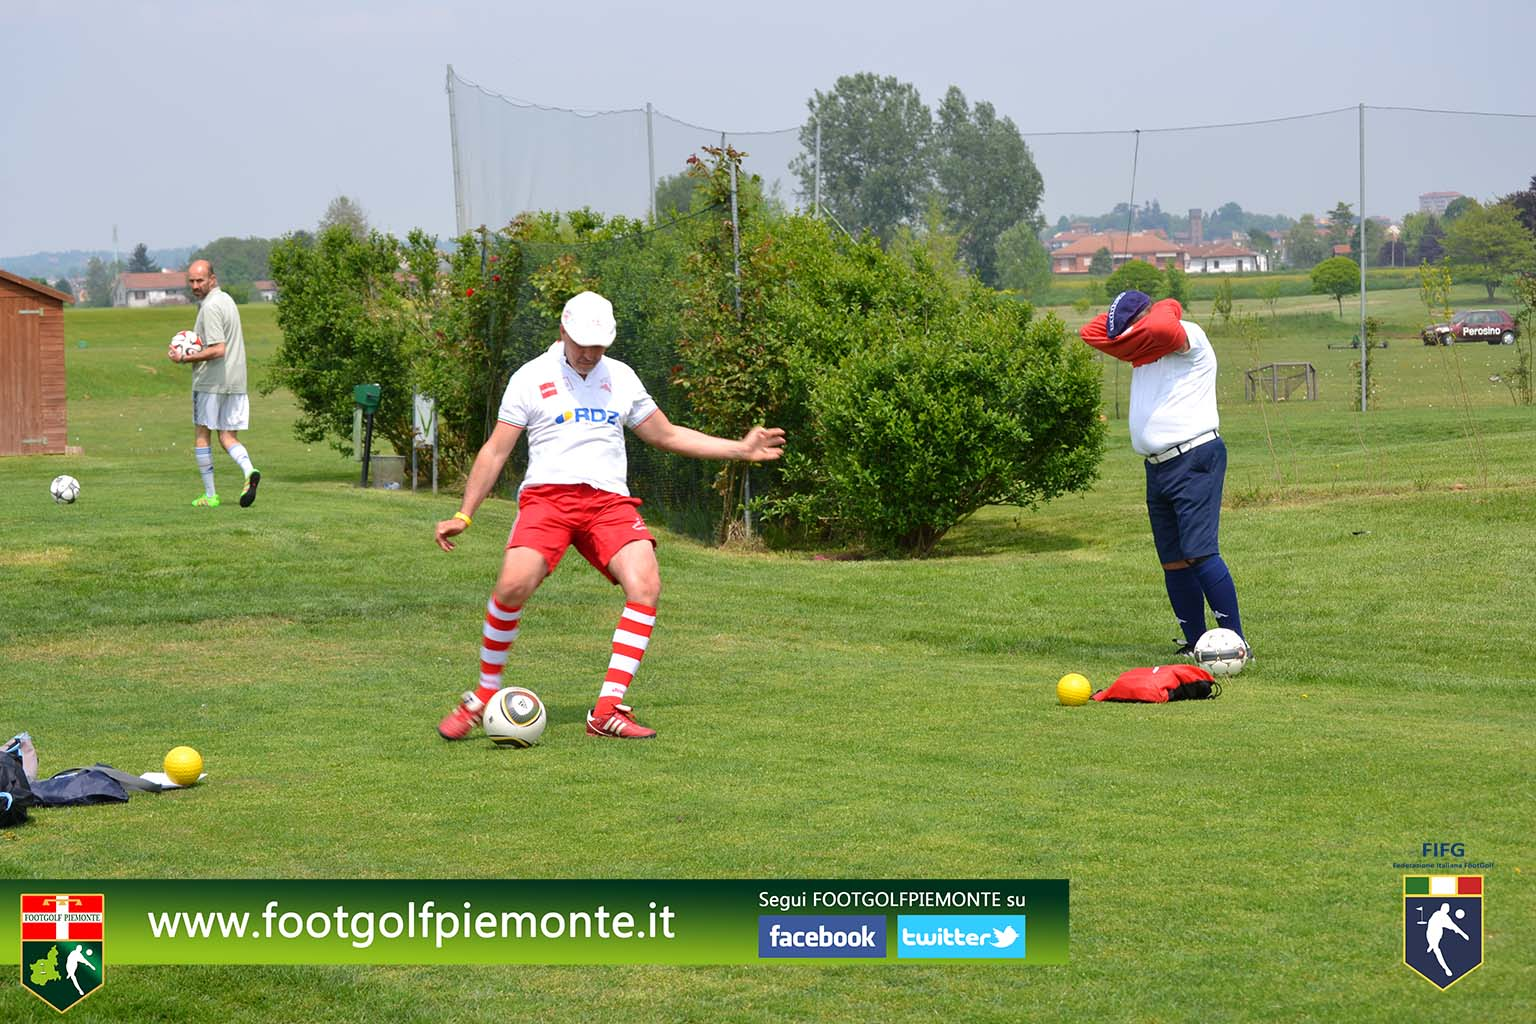 FOTO 9 Regions' Cup Footgolf Piemonte 2016 Golf Città di Asti (At) 30apr16-27